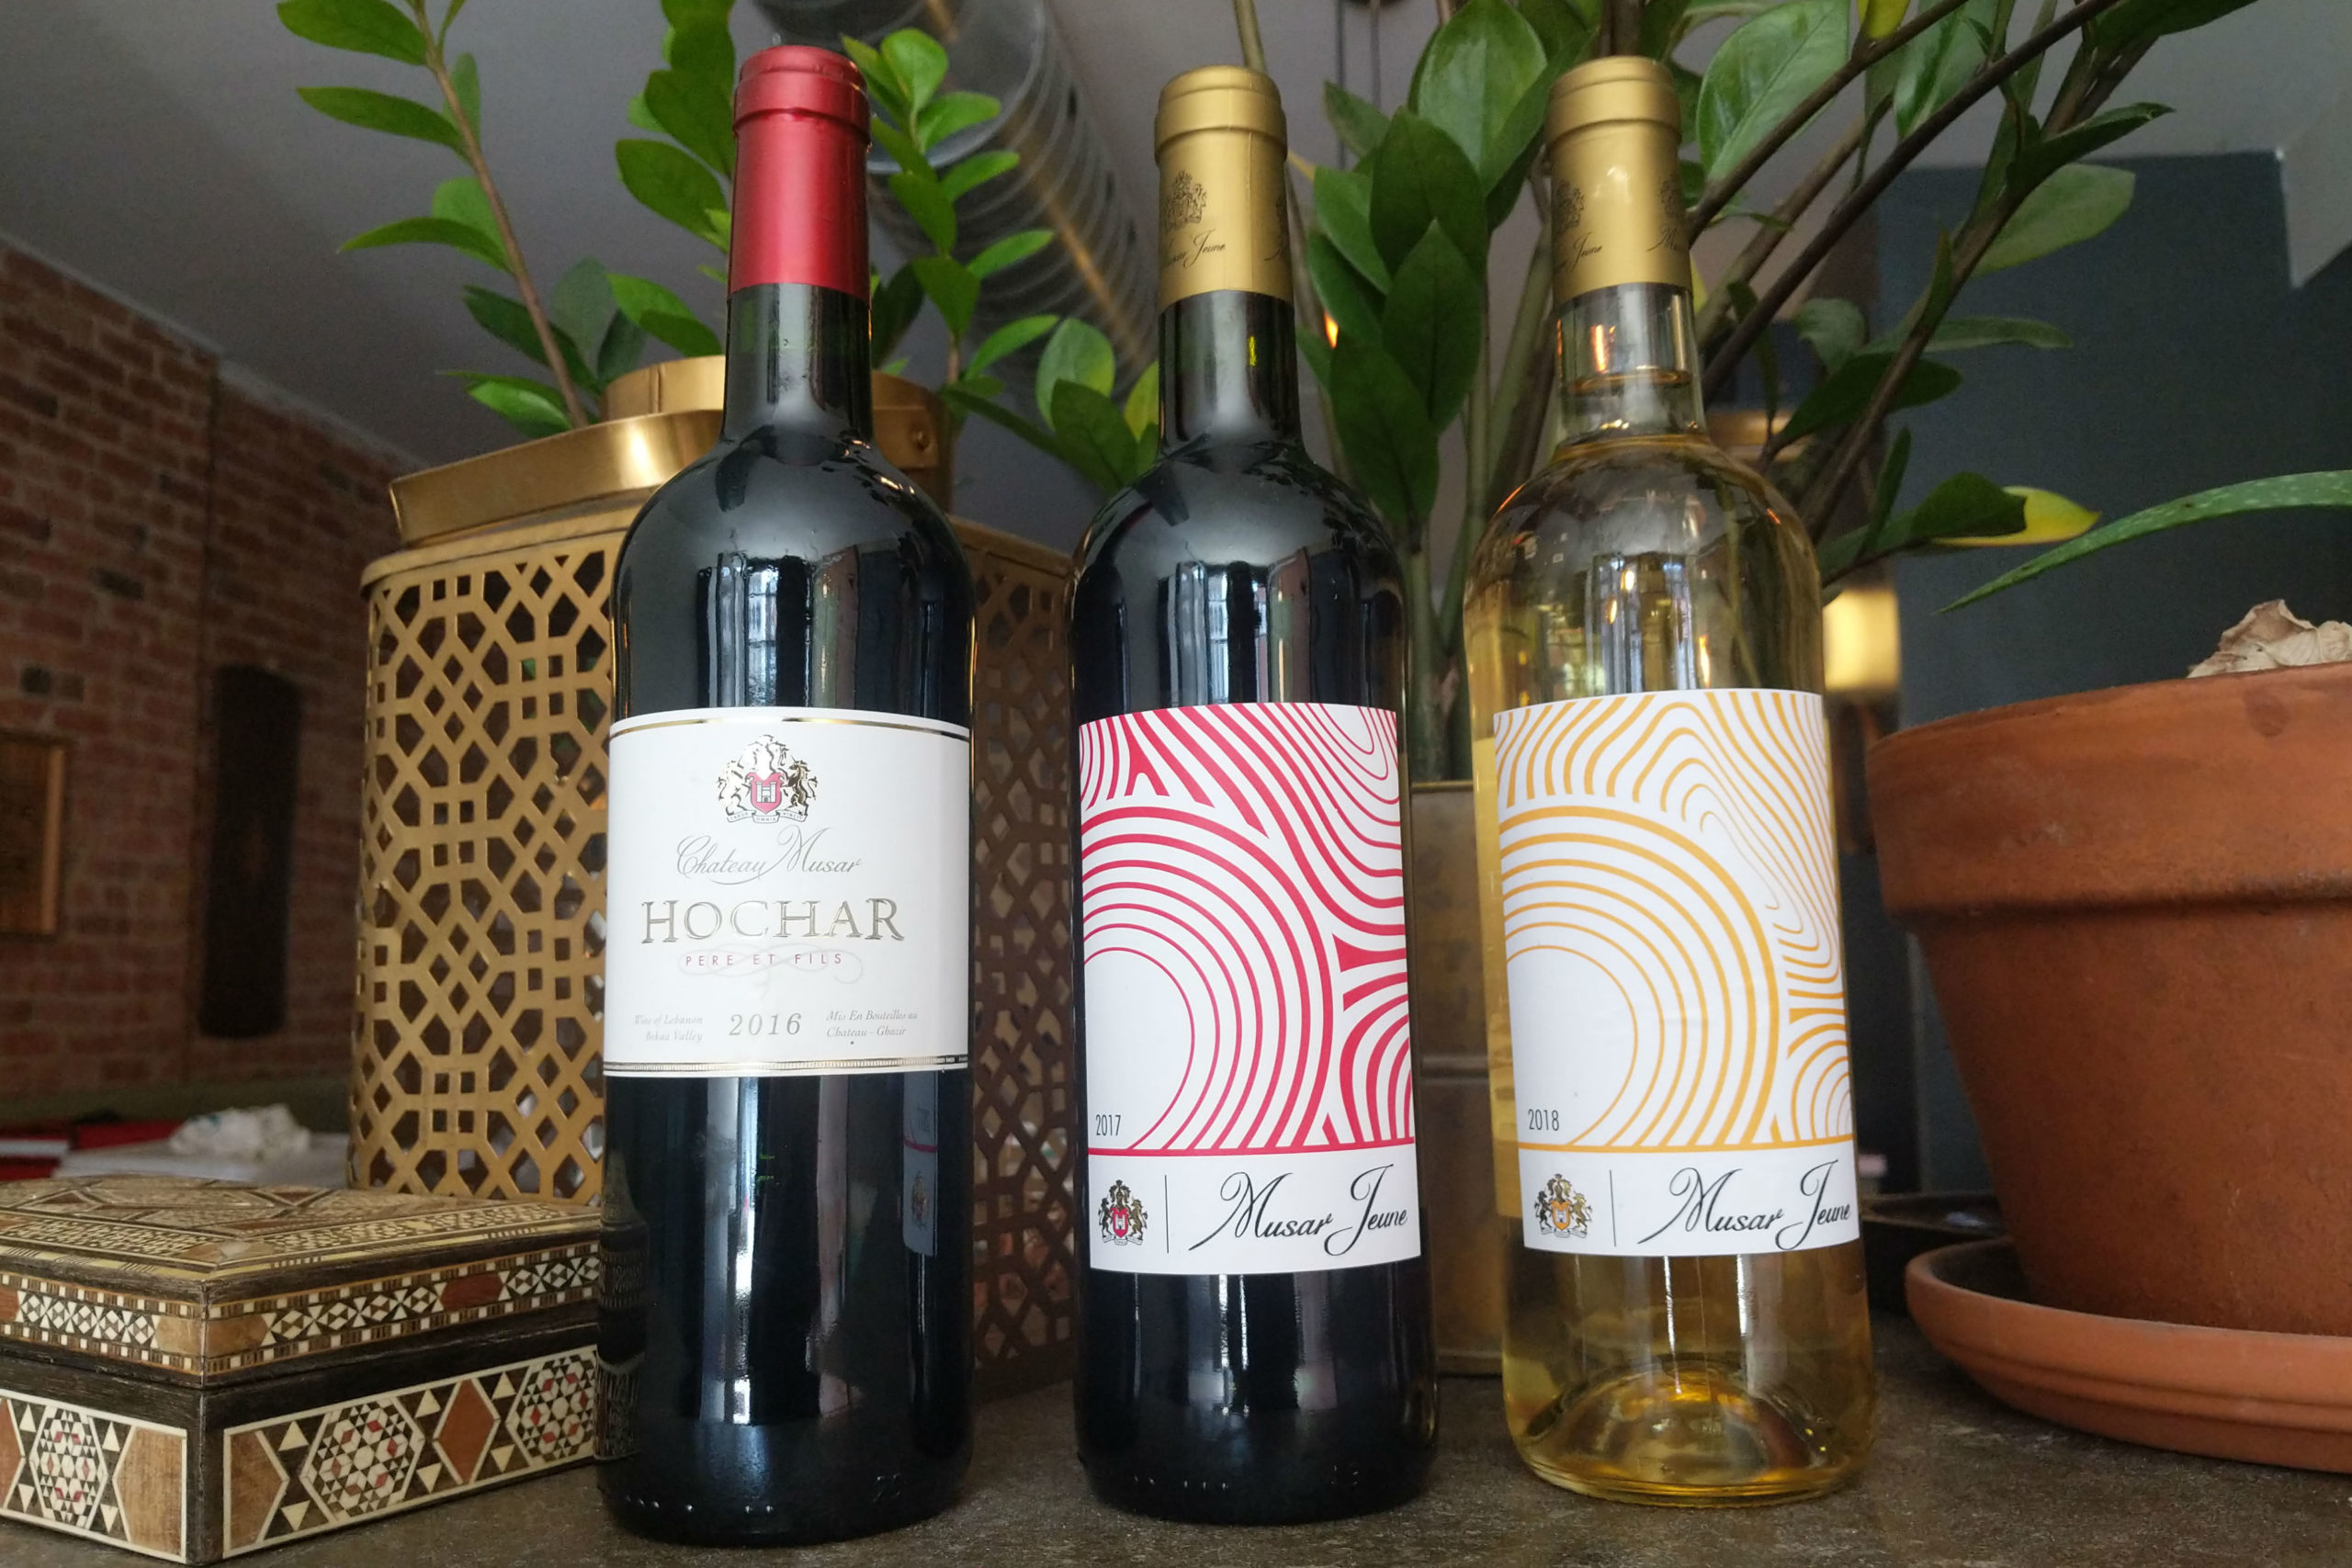 Little Sito Lebanese wines